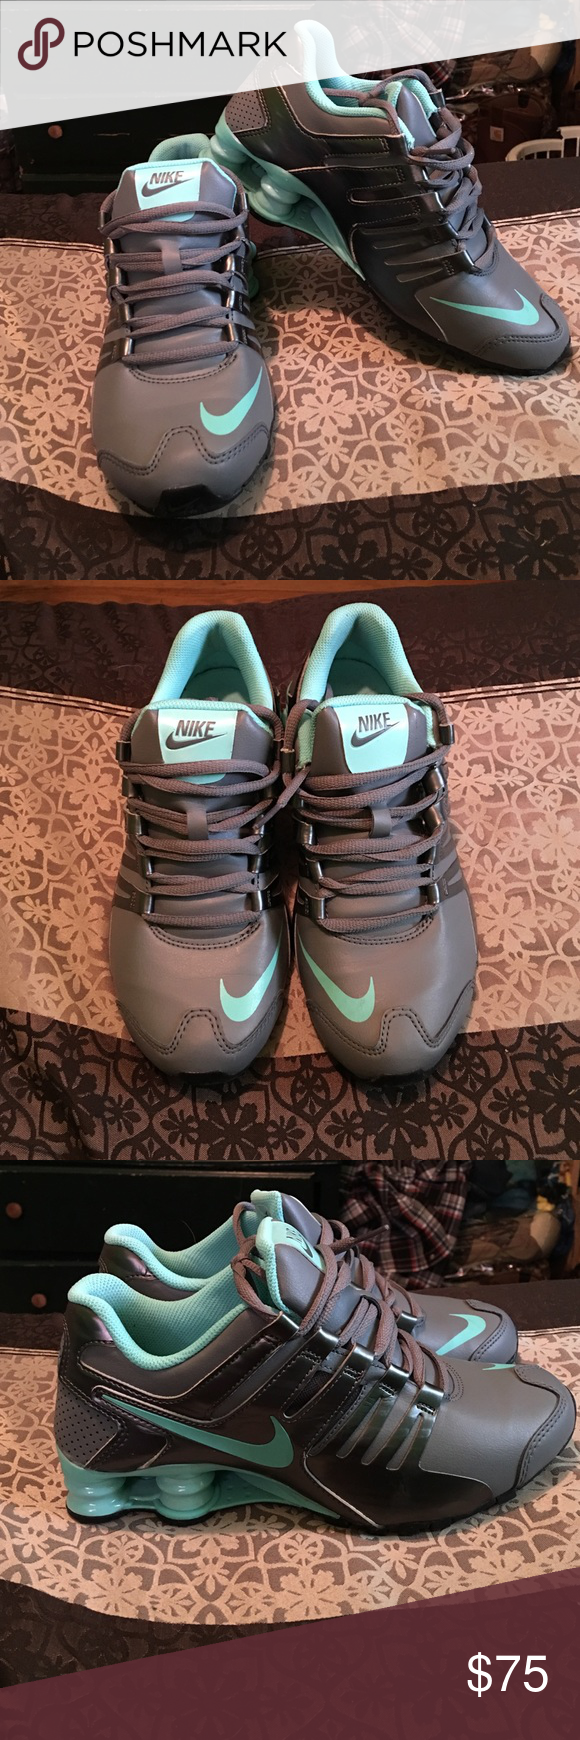 Nike Women's Grey/Silver/Turquoise Shox Size 6.5 women's Nike shox. These were a fantastic buy for me, but I am unable to wear them at work. Comfortable and true to size. Fit well. Nike Shoes Sneakers